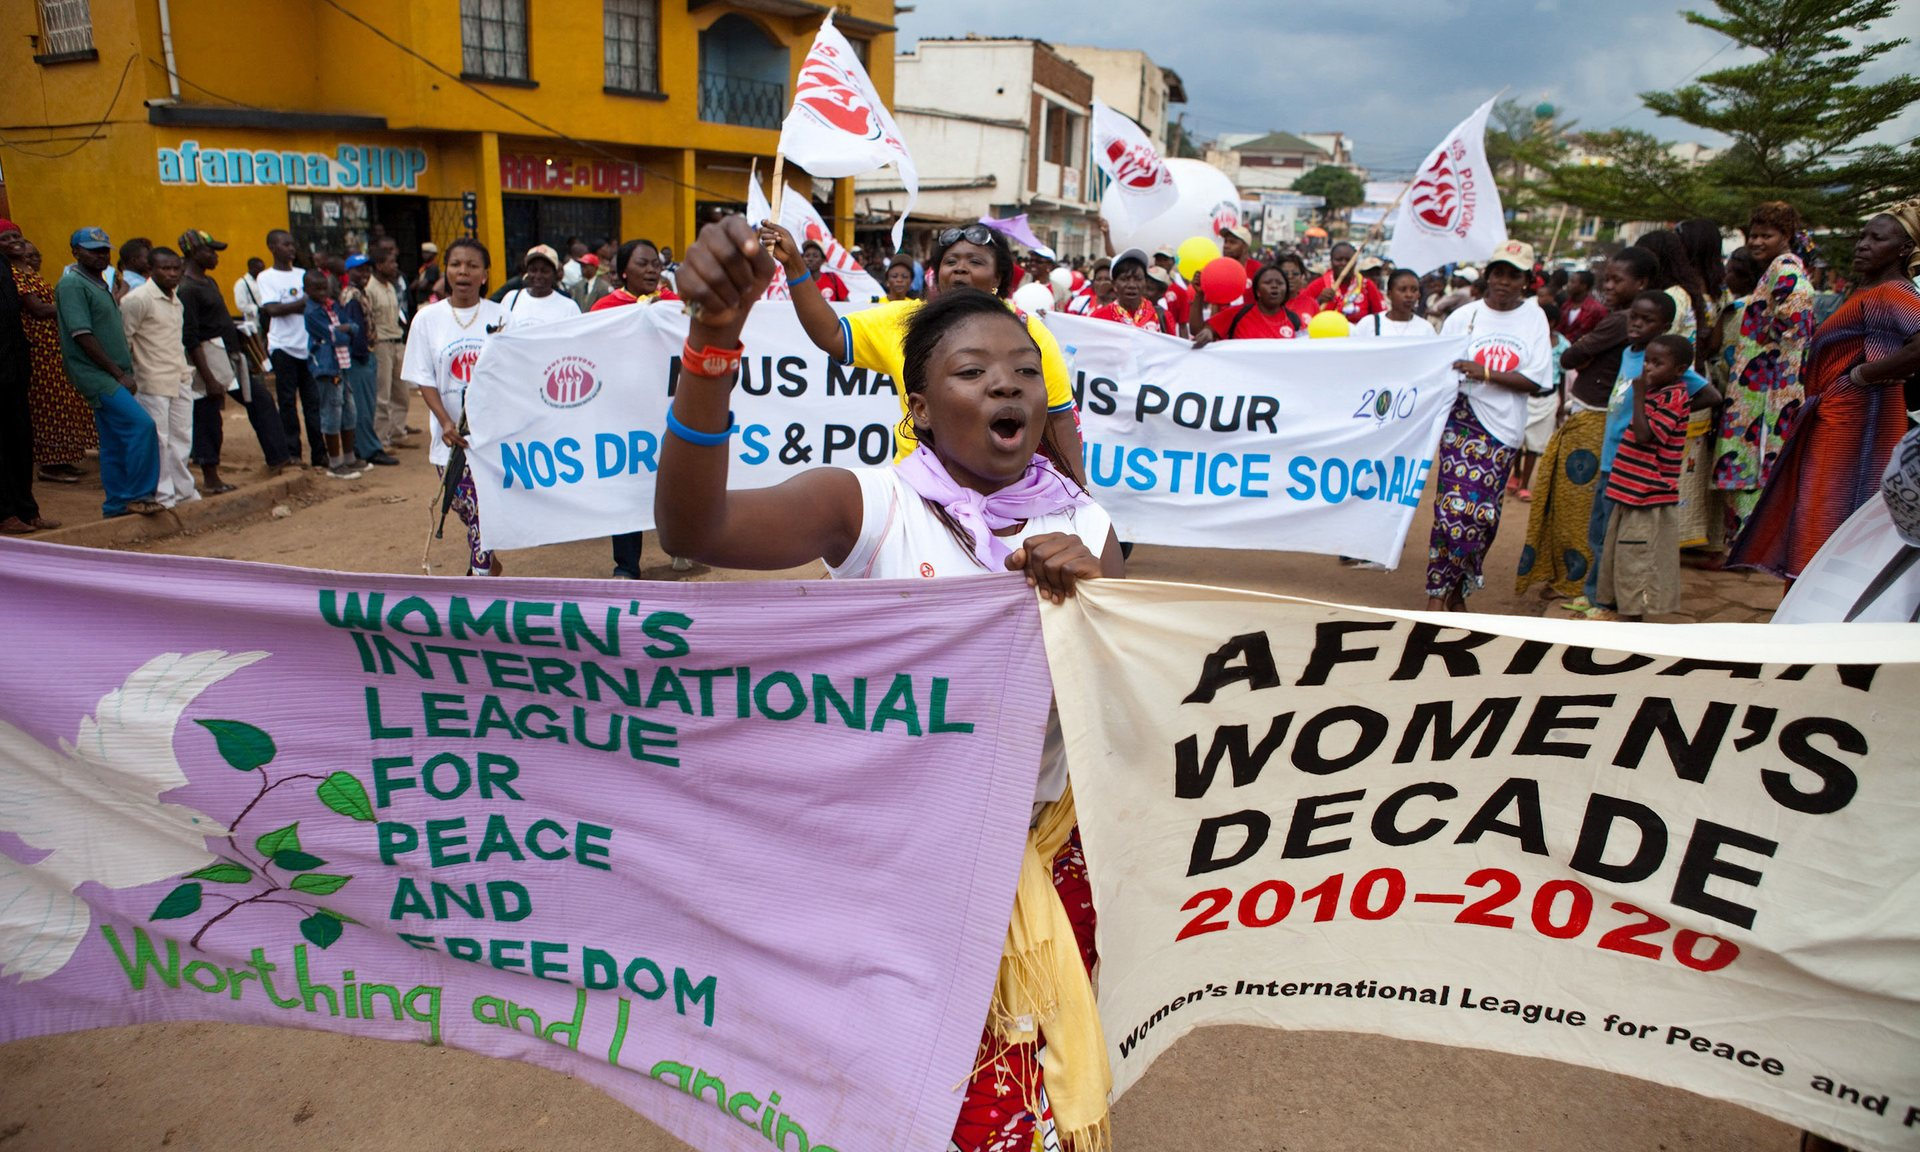 Women in Bukavu, in the Democratic Republic of the Congo's South Kivu province, participate in the World March of Women in October 2010. Photograph: Gwenn Dubourthoumieu/AFP/Getty Images